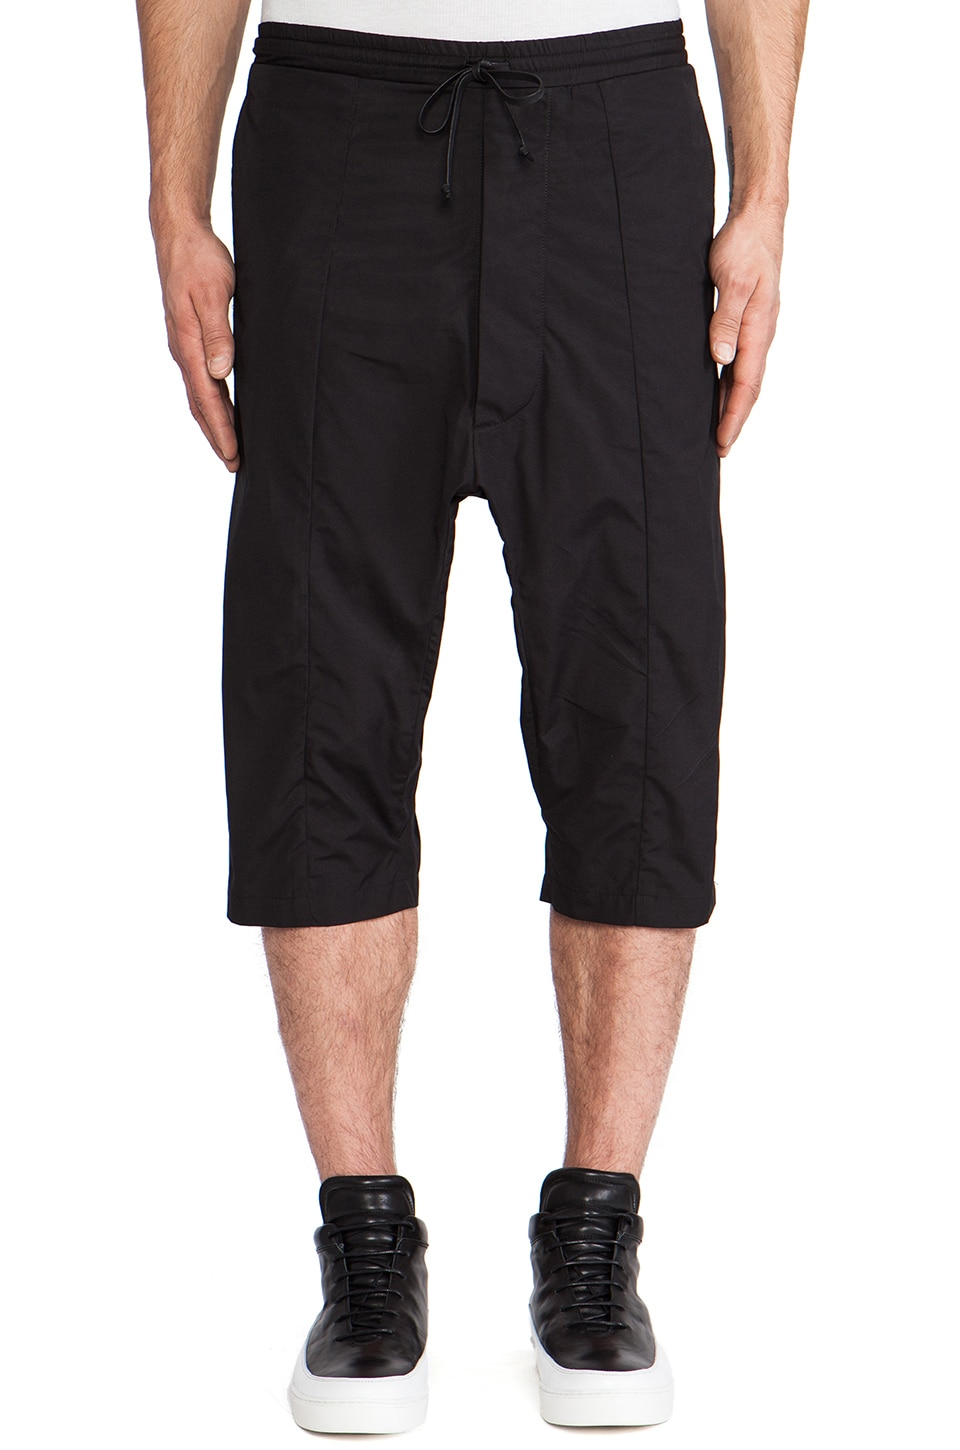 Public School Drawstring Shorts in Black